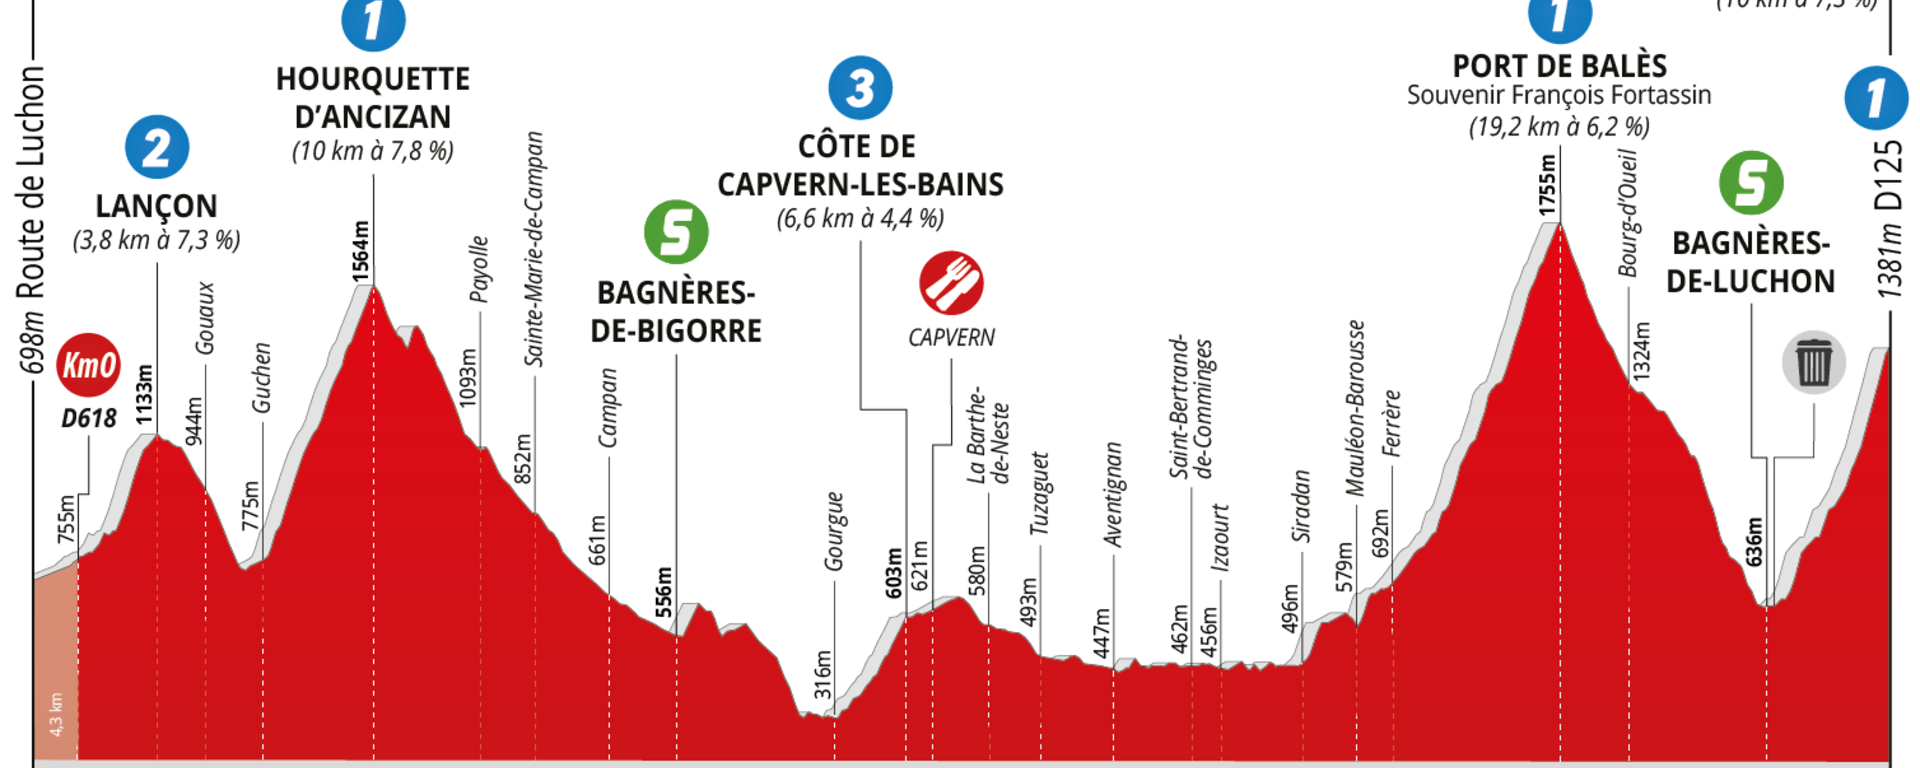 race profile of stage 3 of the Occitanie route